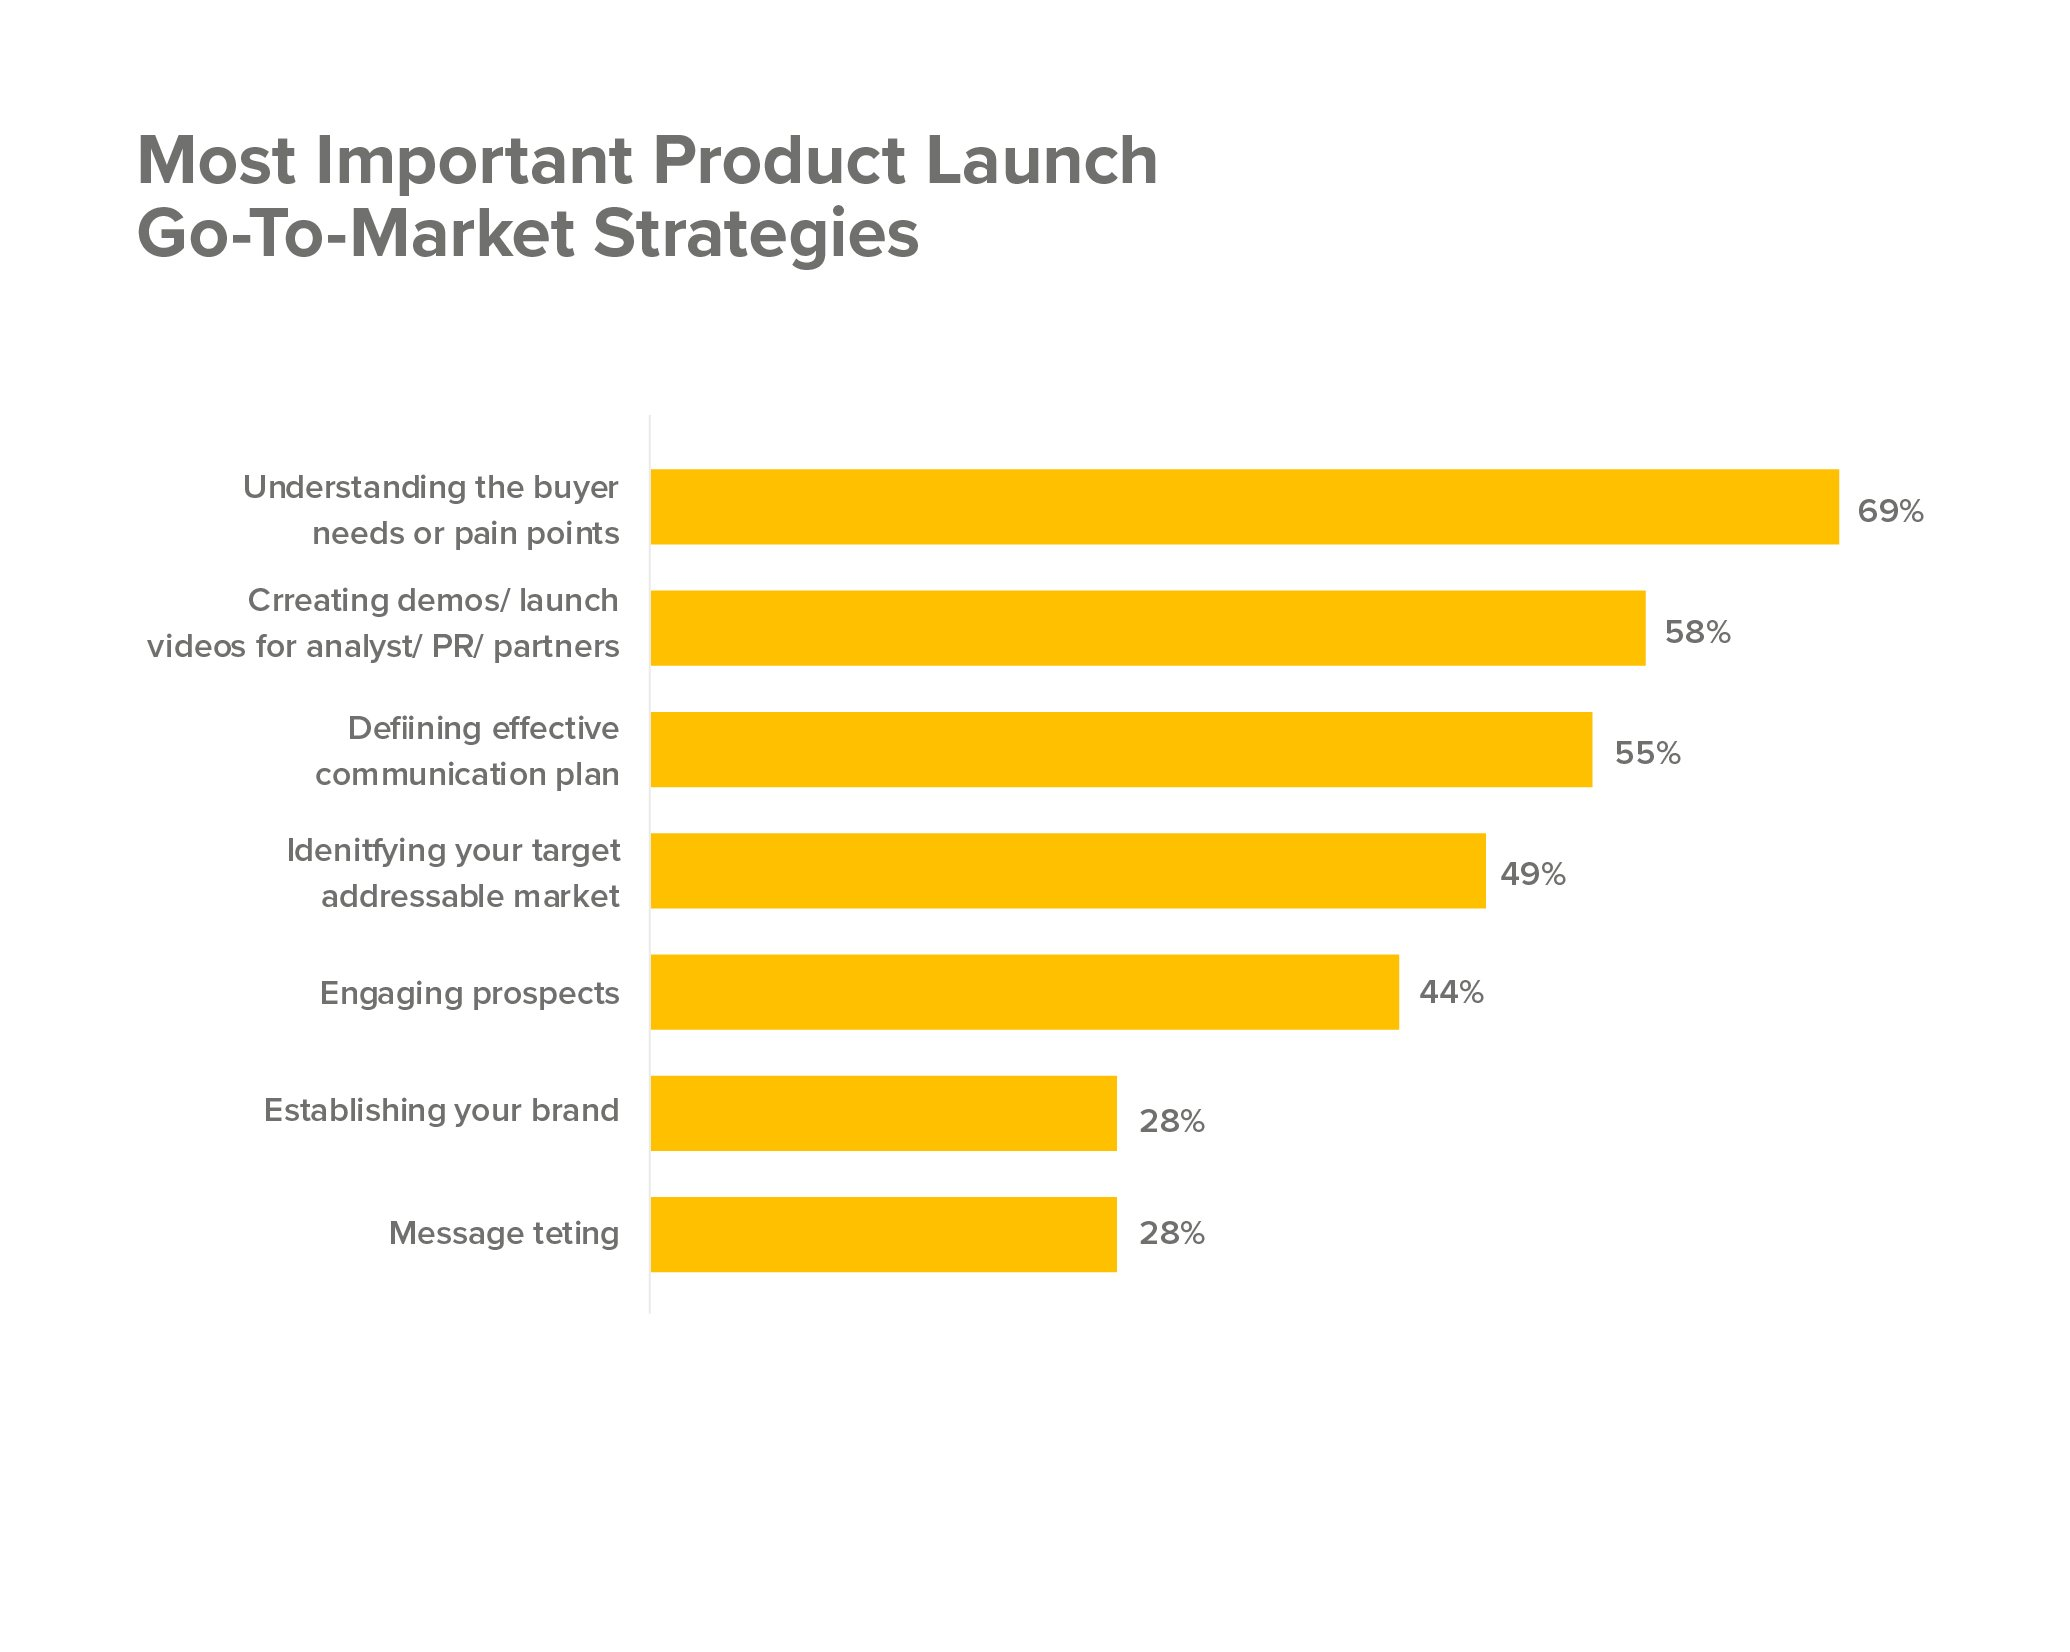 Product launch go-to market strategy